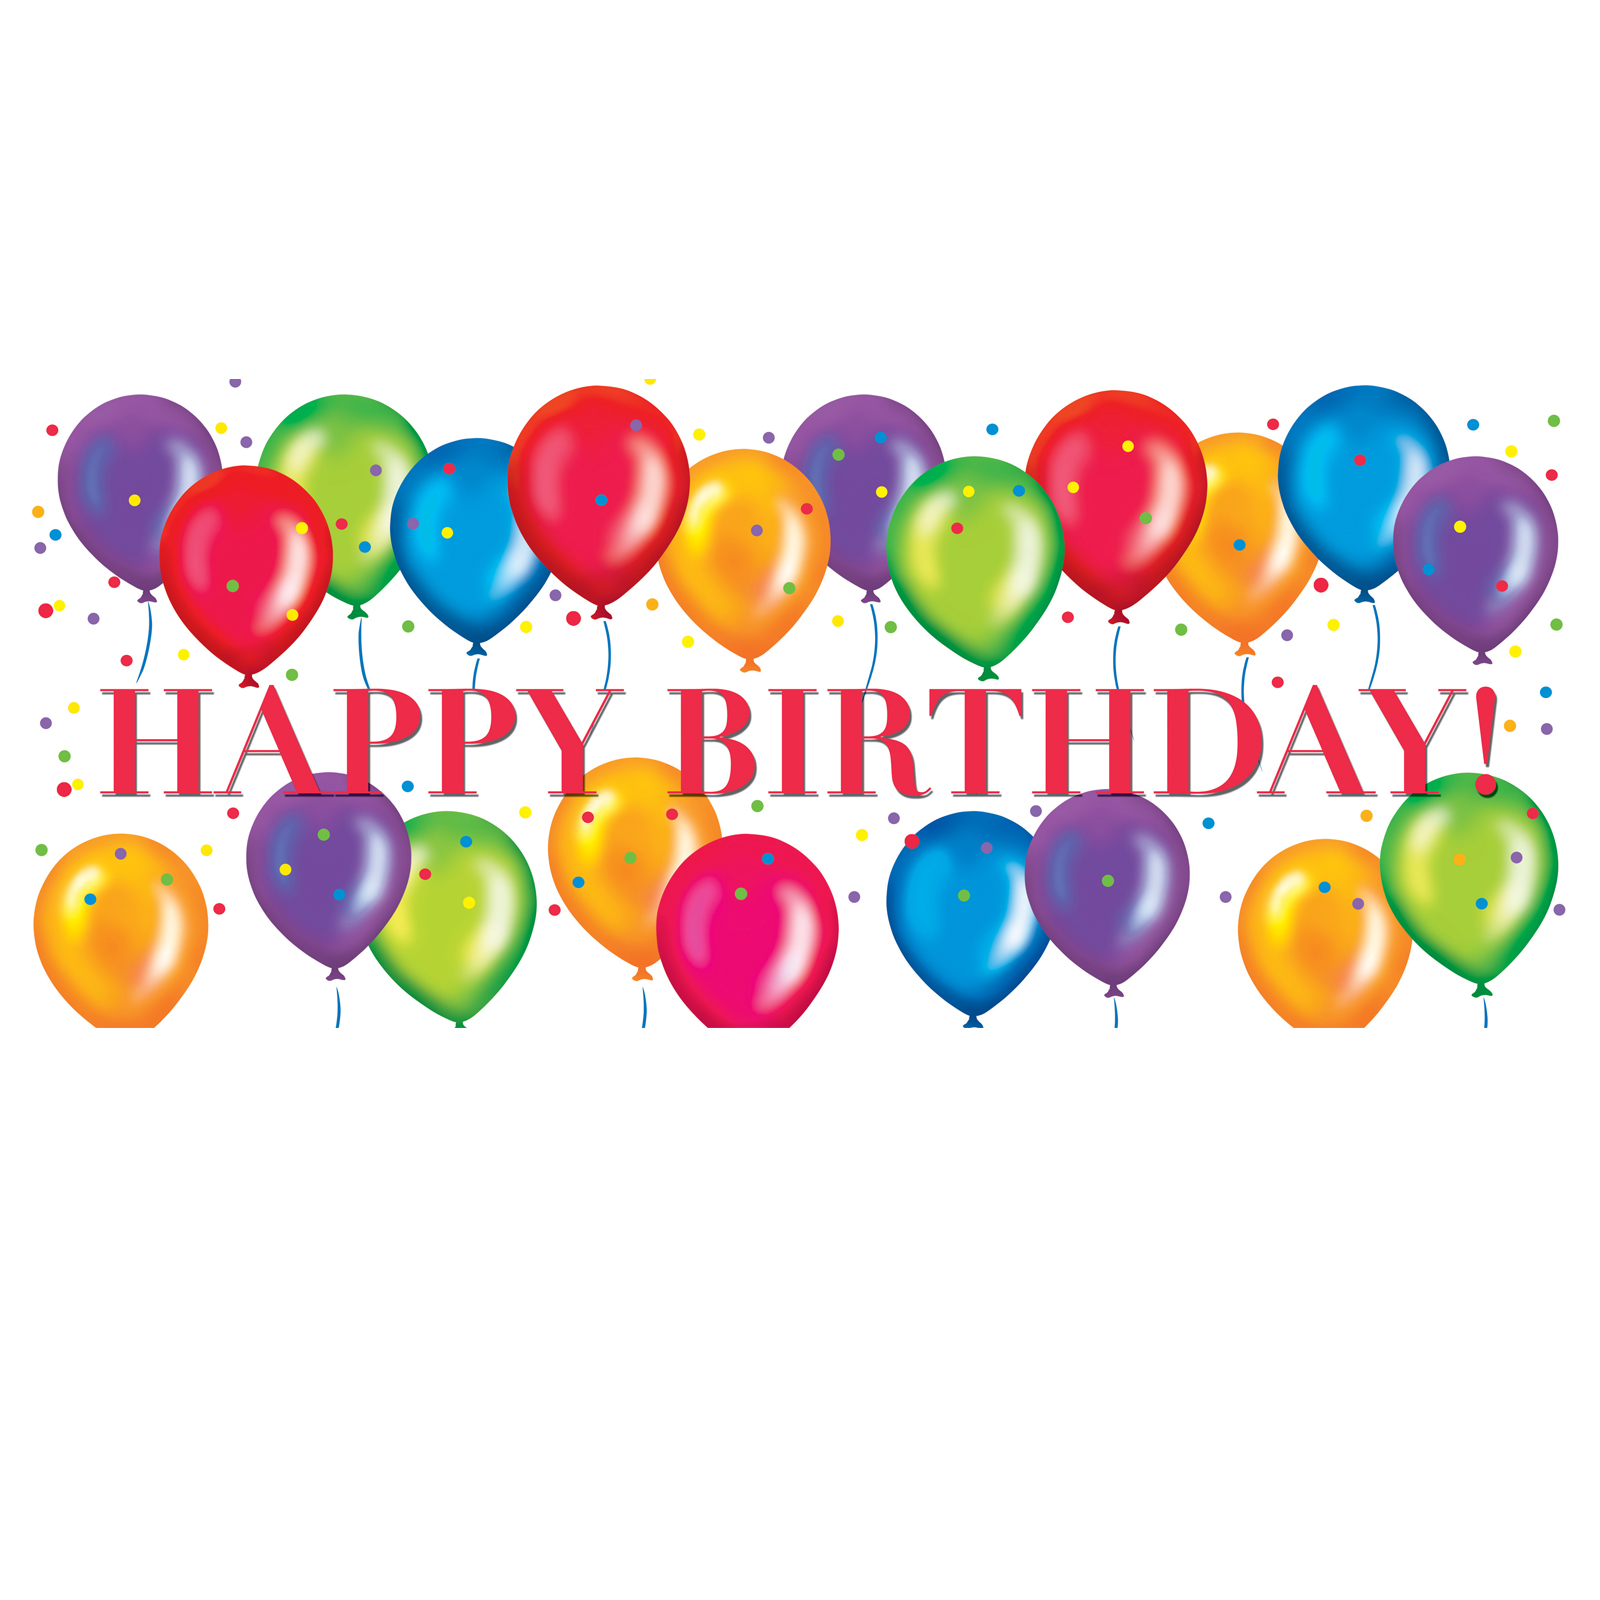 Happy birthday clipart free - - Free Clipart Birthday